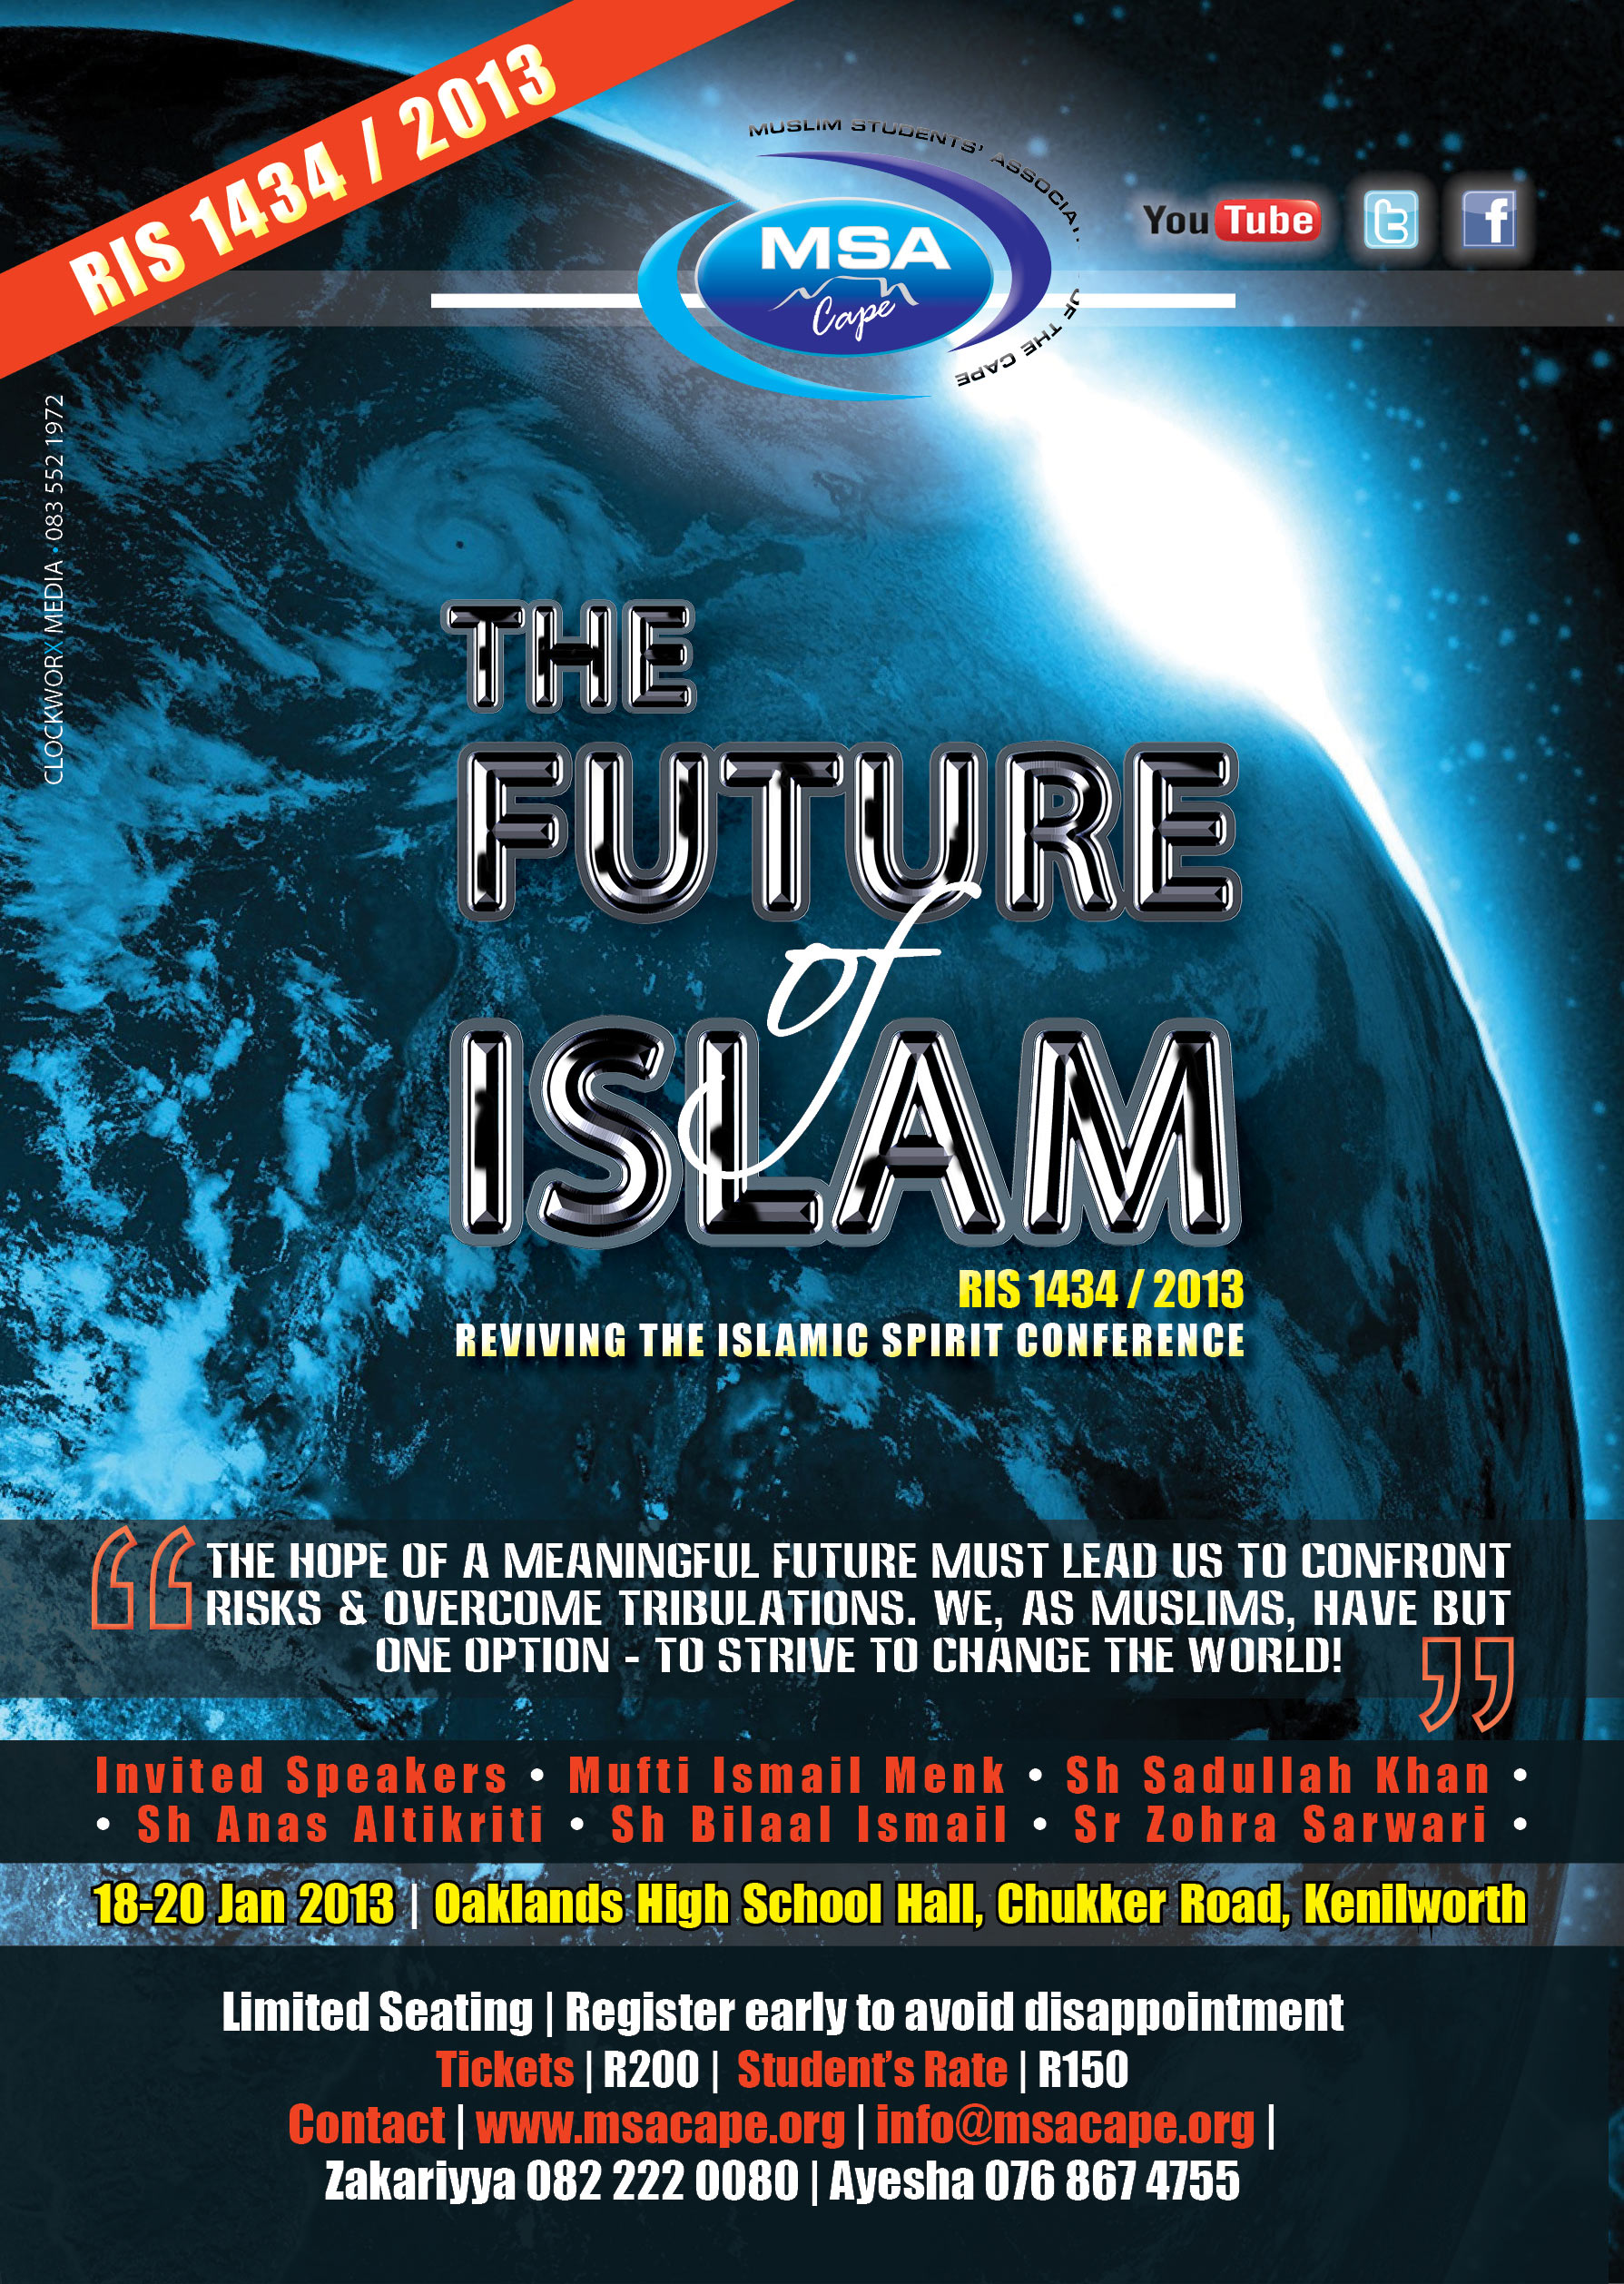 RIS 2013: The Future of Islam.